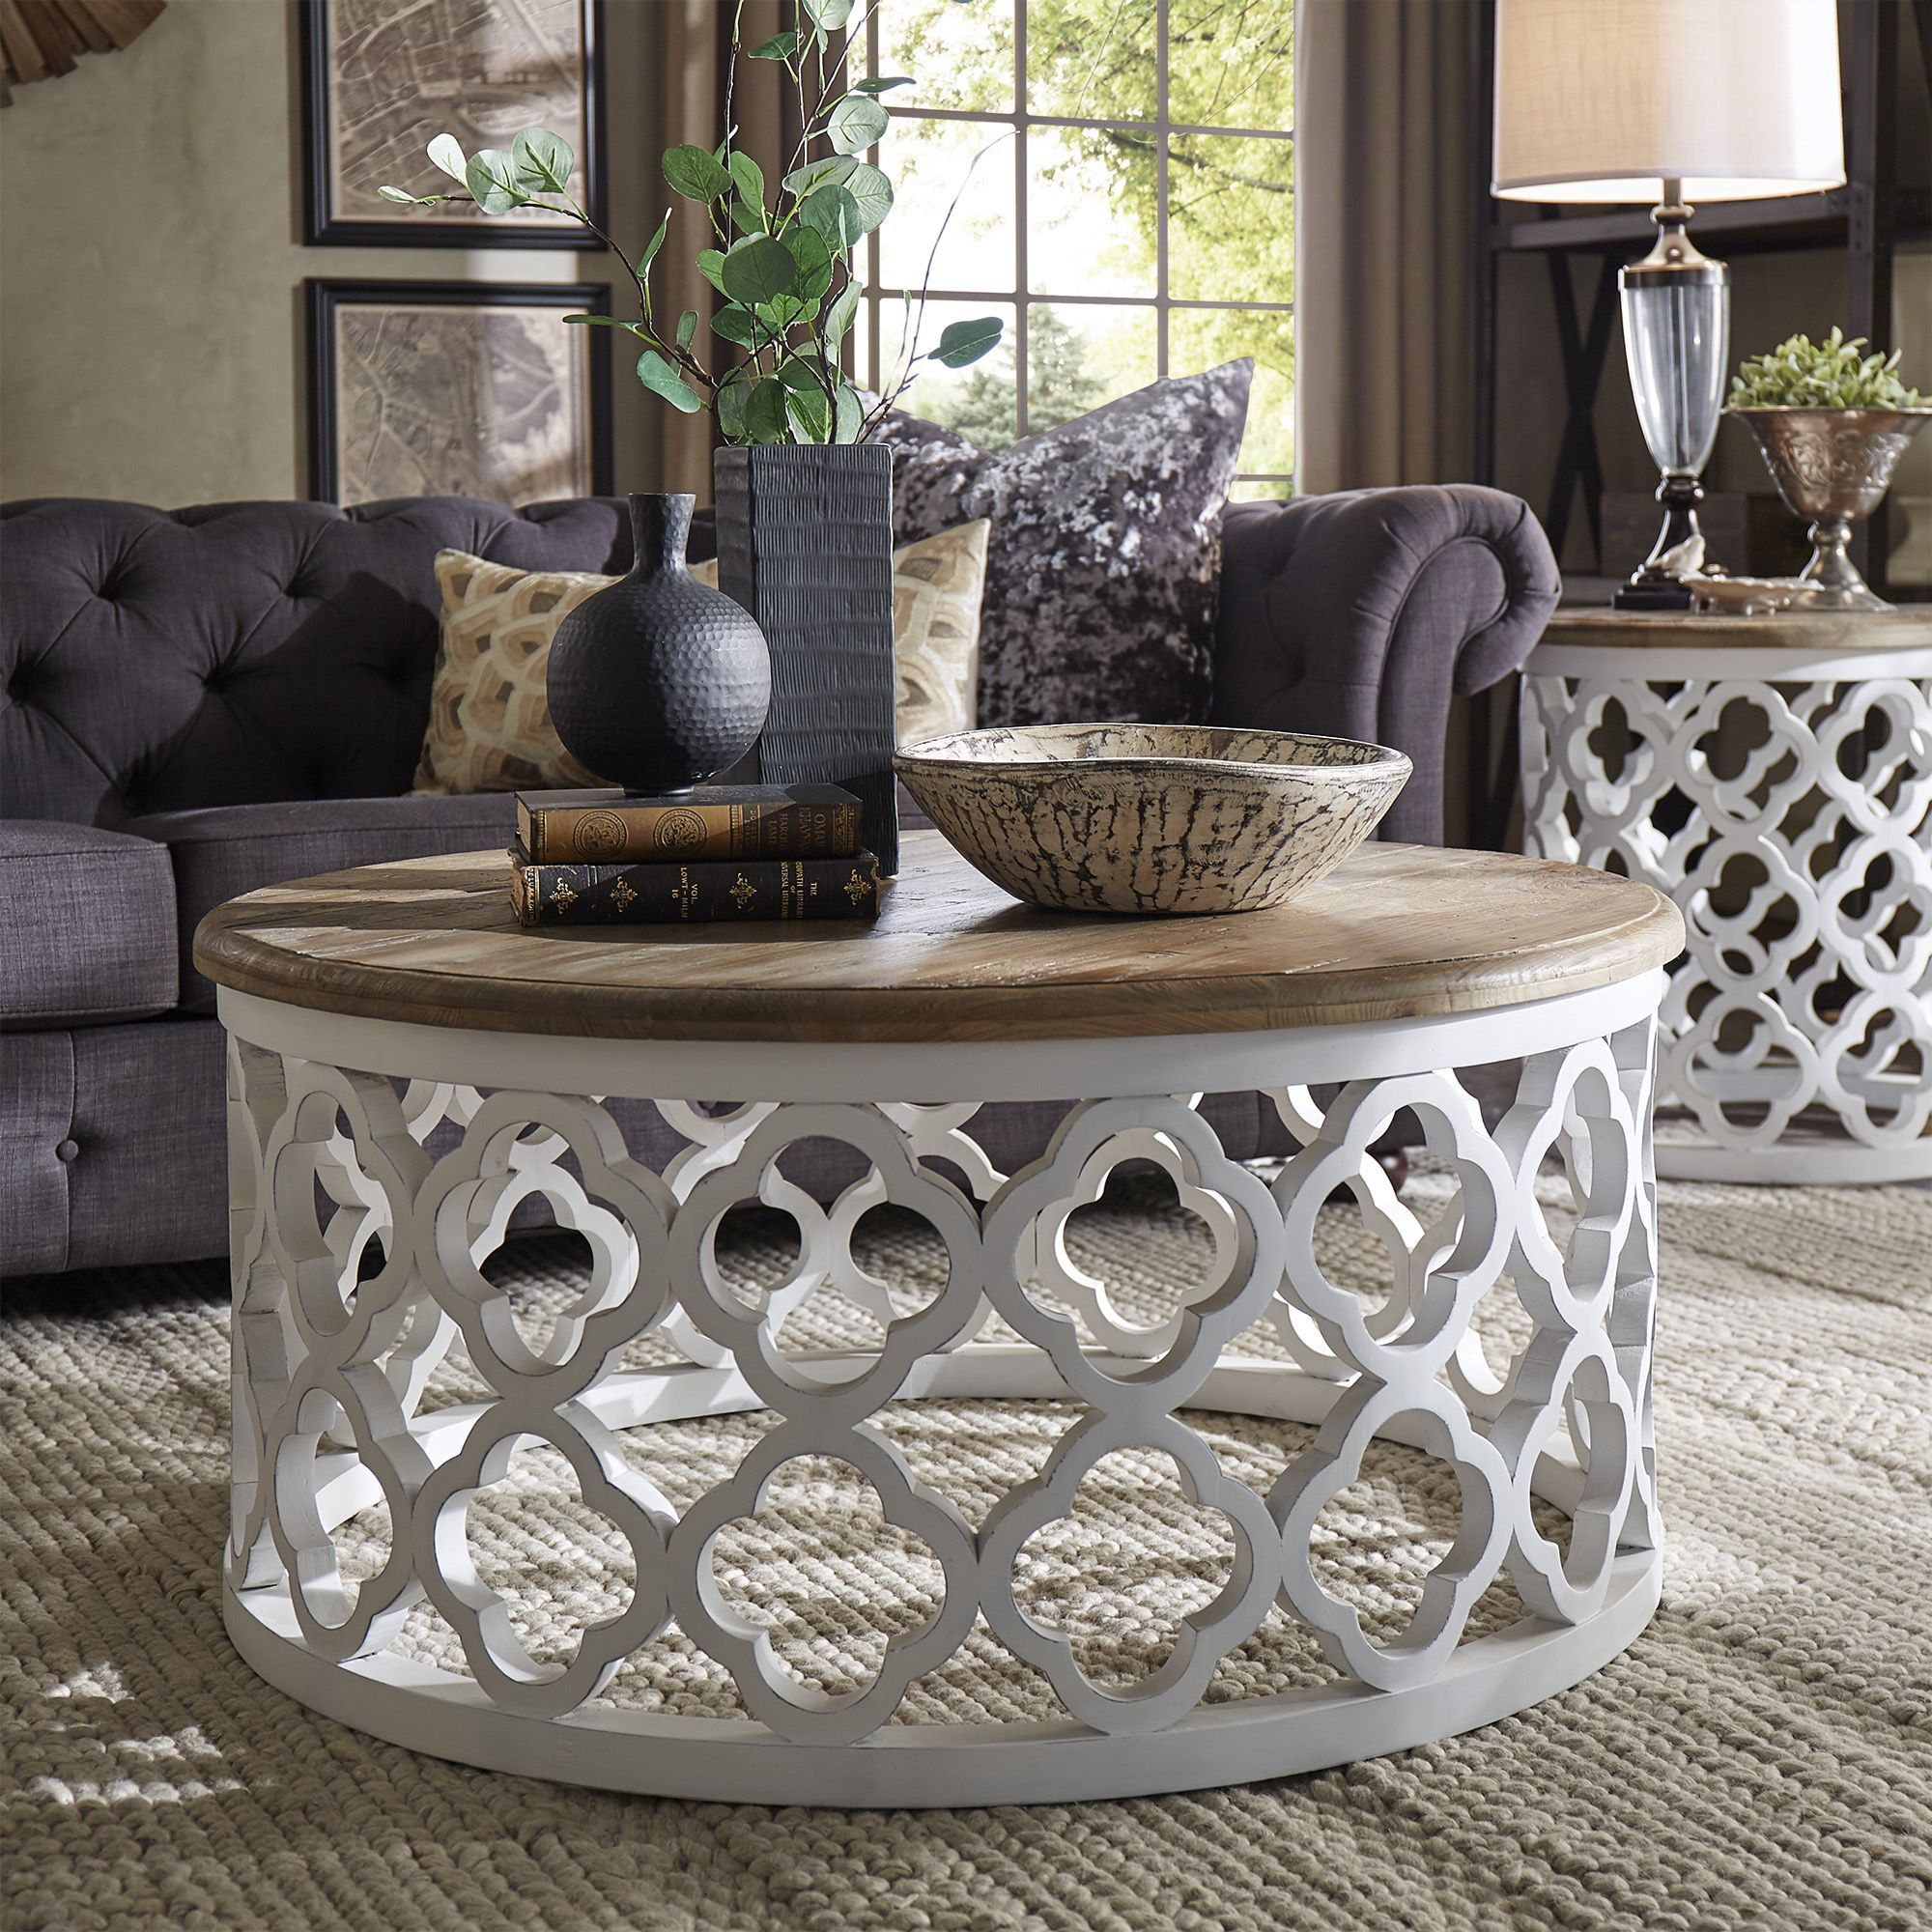 Vince Reclaimed Wood Moroccan Trellis Drum Coffee Table By Inspire Q Artisan Drum Coffee Table Decor Round Coffee Table